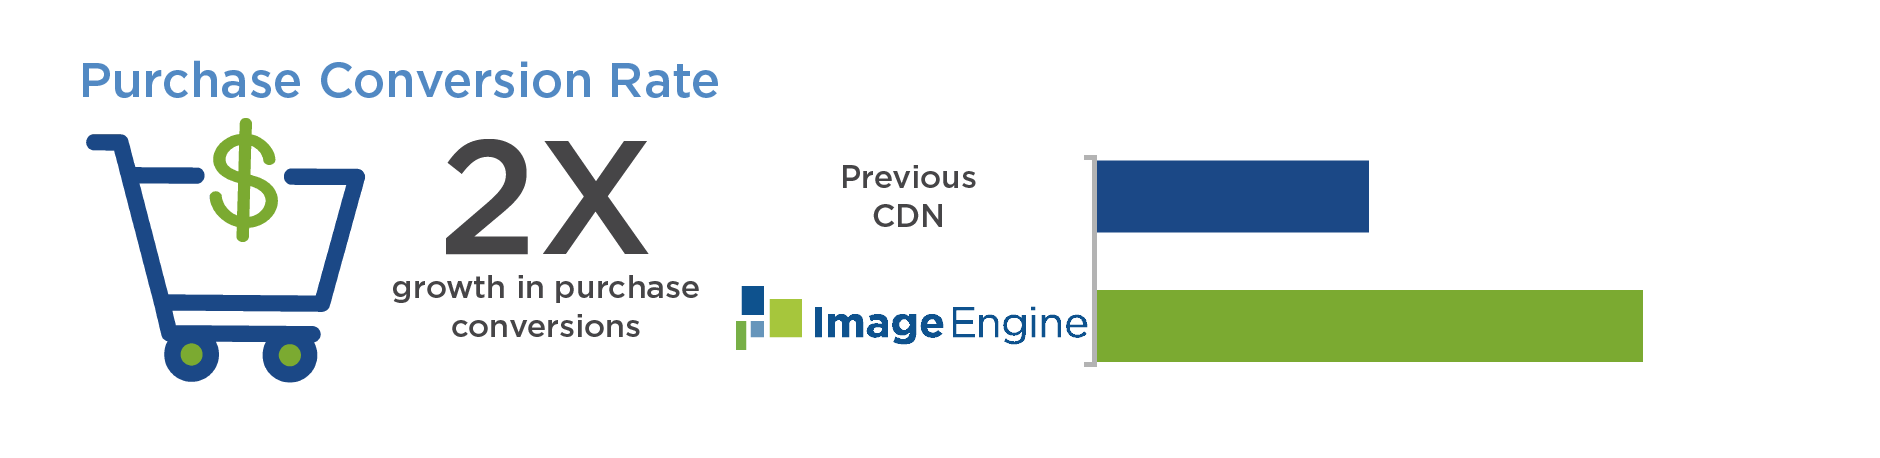 Furnspace Increase in Purchase Conversion Rate from ImageEngine Image CDN